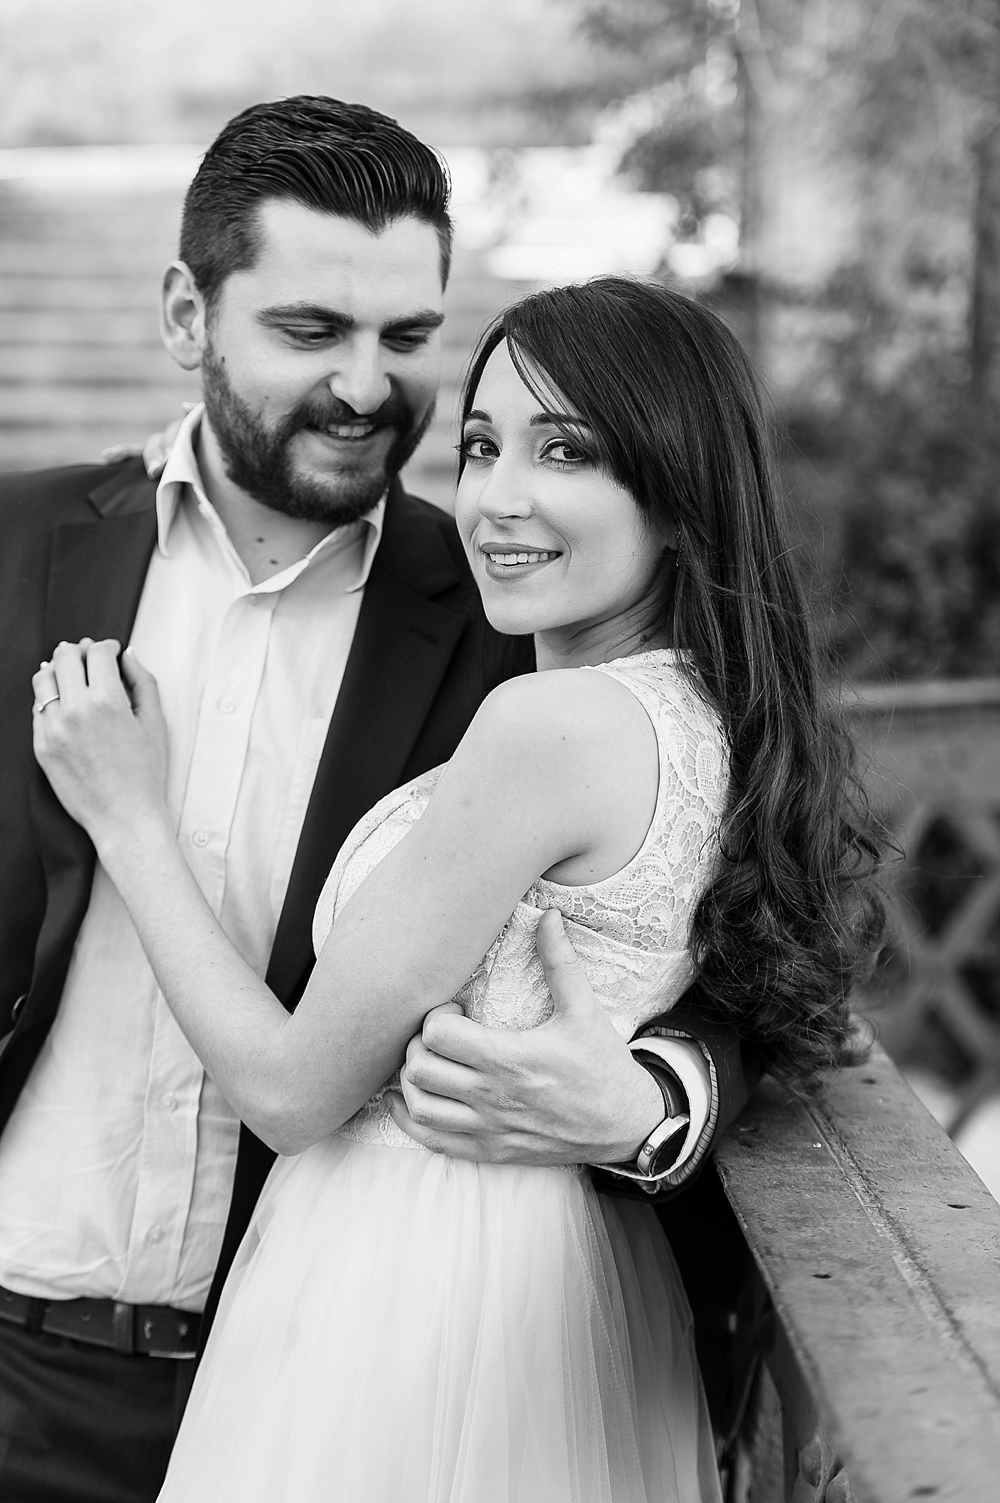 Engagement Session | Pre Wedding Malta | Shane P. Watts Photography | VallettaEngagement Session | Pre Wedding Malta | Shane P. Watts Photography | Valletta